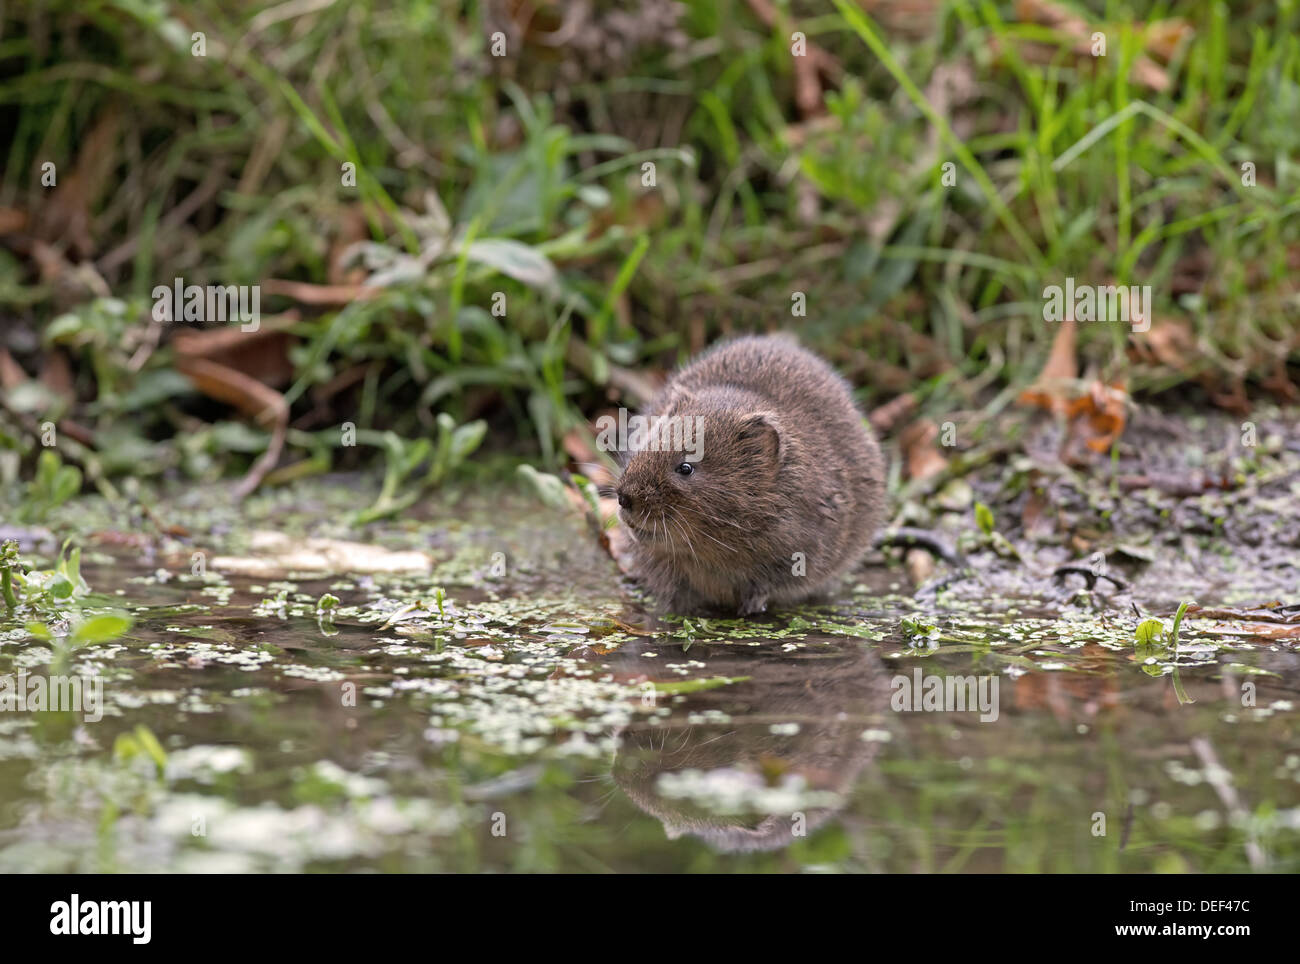 Water Vole - Arvicola terrestris, beside a stream, Uk - Stock Image